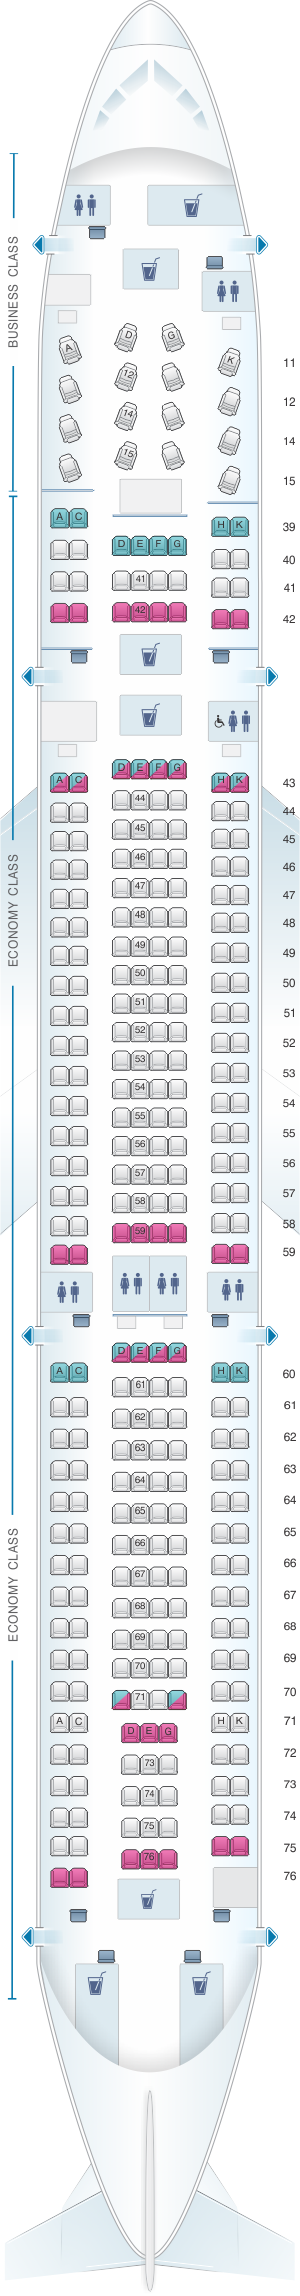 cathay pacific a330 300 seat map Seat Map Cathay Pacific Airways Airbus A330 300 33p Air Transat cathay pacific a330 300 seat map